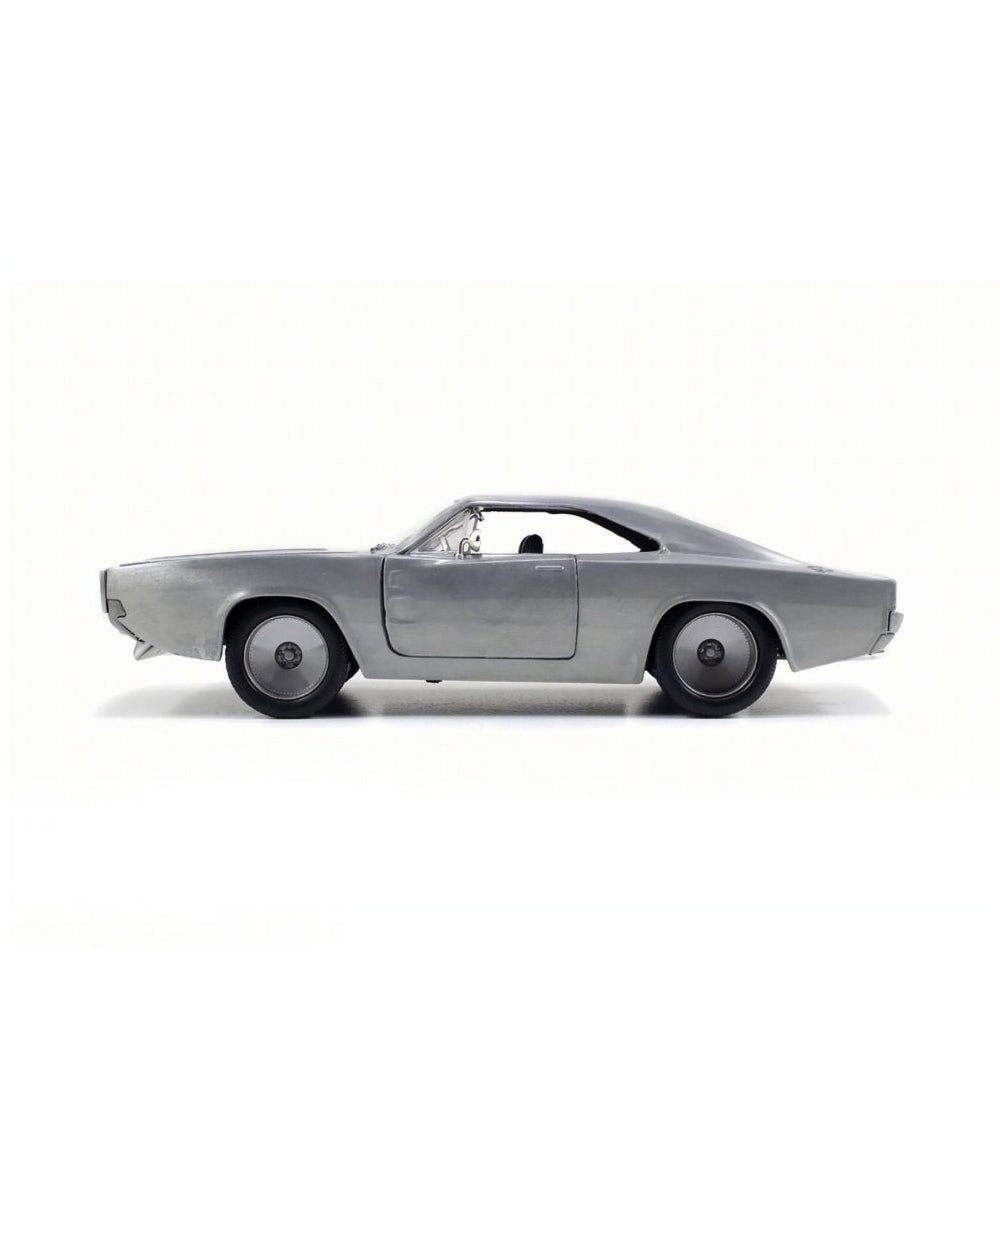 Fast and the Furious Does Dodge Charger Bare Metal 1:32 Die-Cast Car - The Pink a la Mode